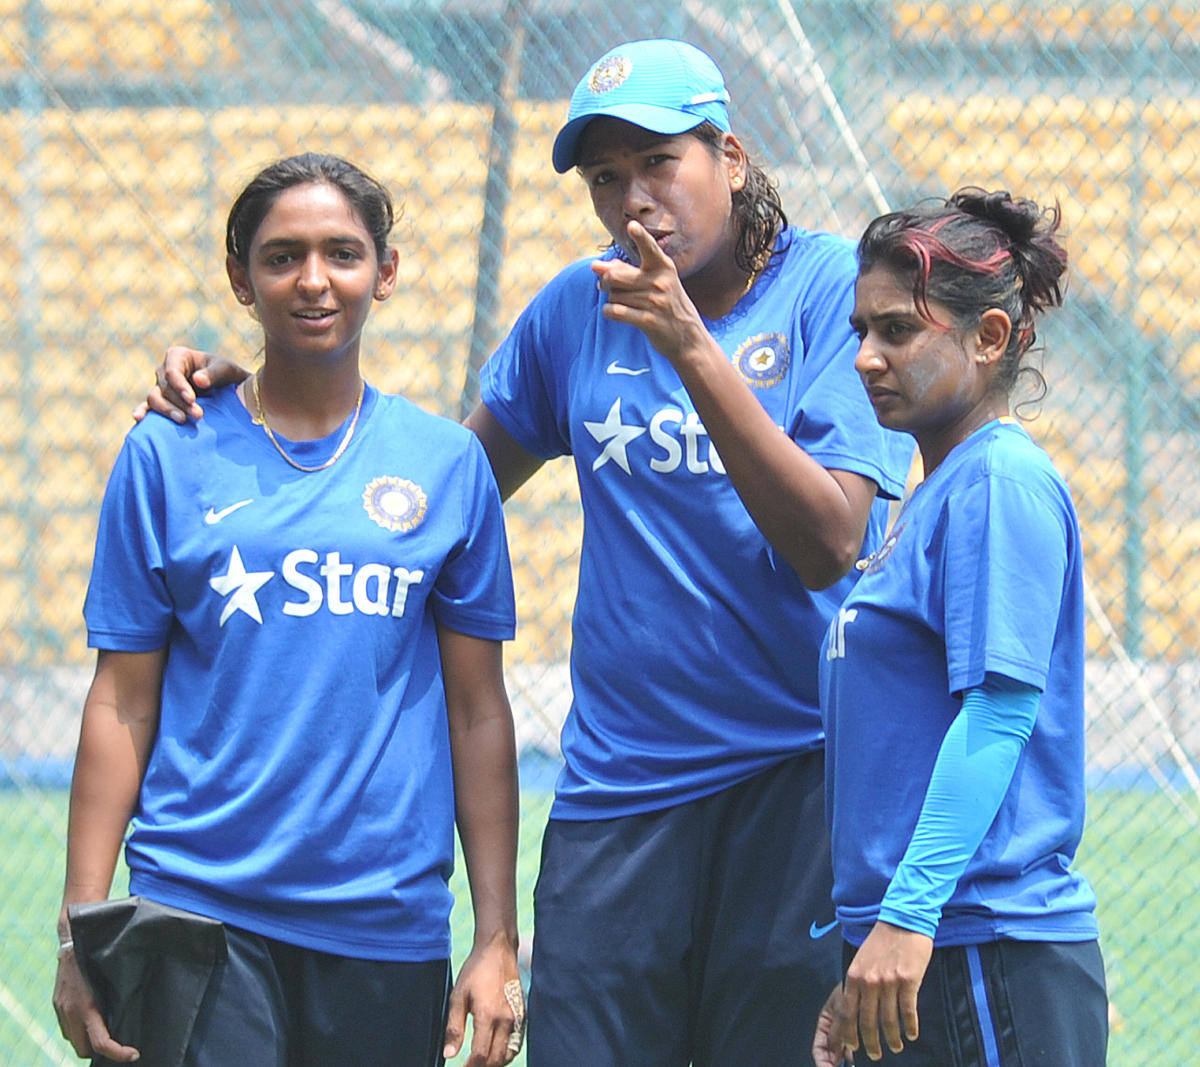 Harmanpreet Kaur (left) and Mithali Rai (right) were the captains of the two teams that played an exhibition T20 match during the IPL last year. DH File Photo